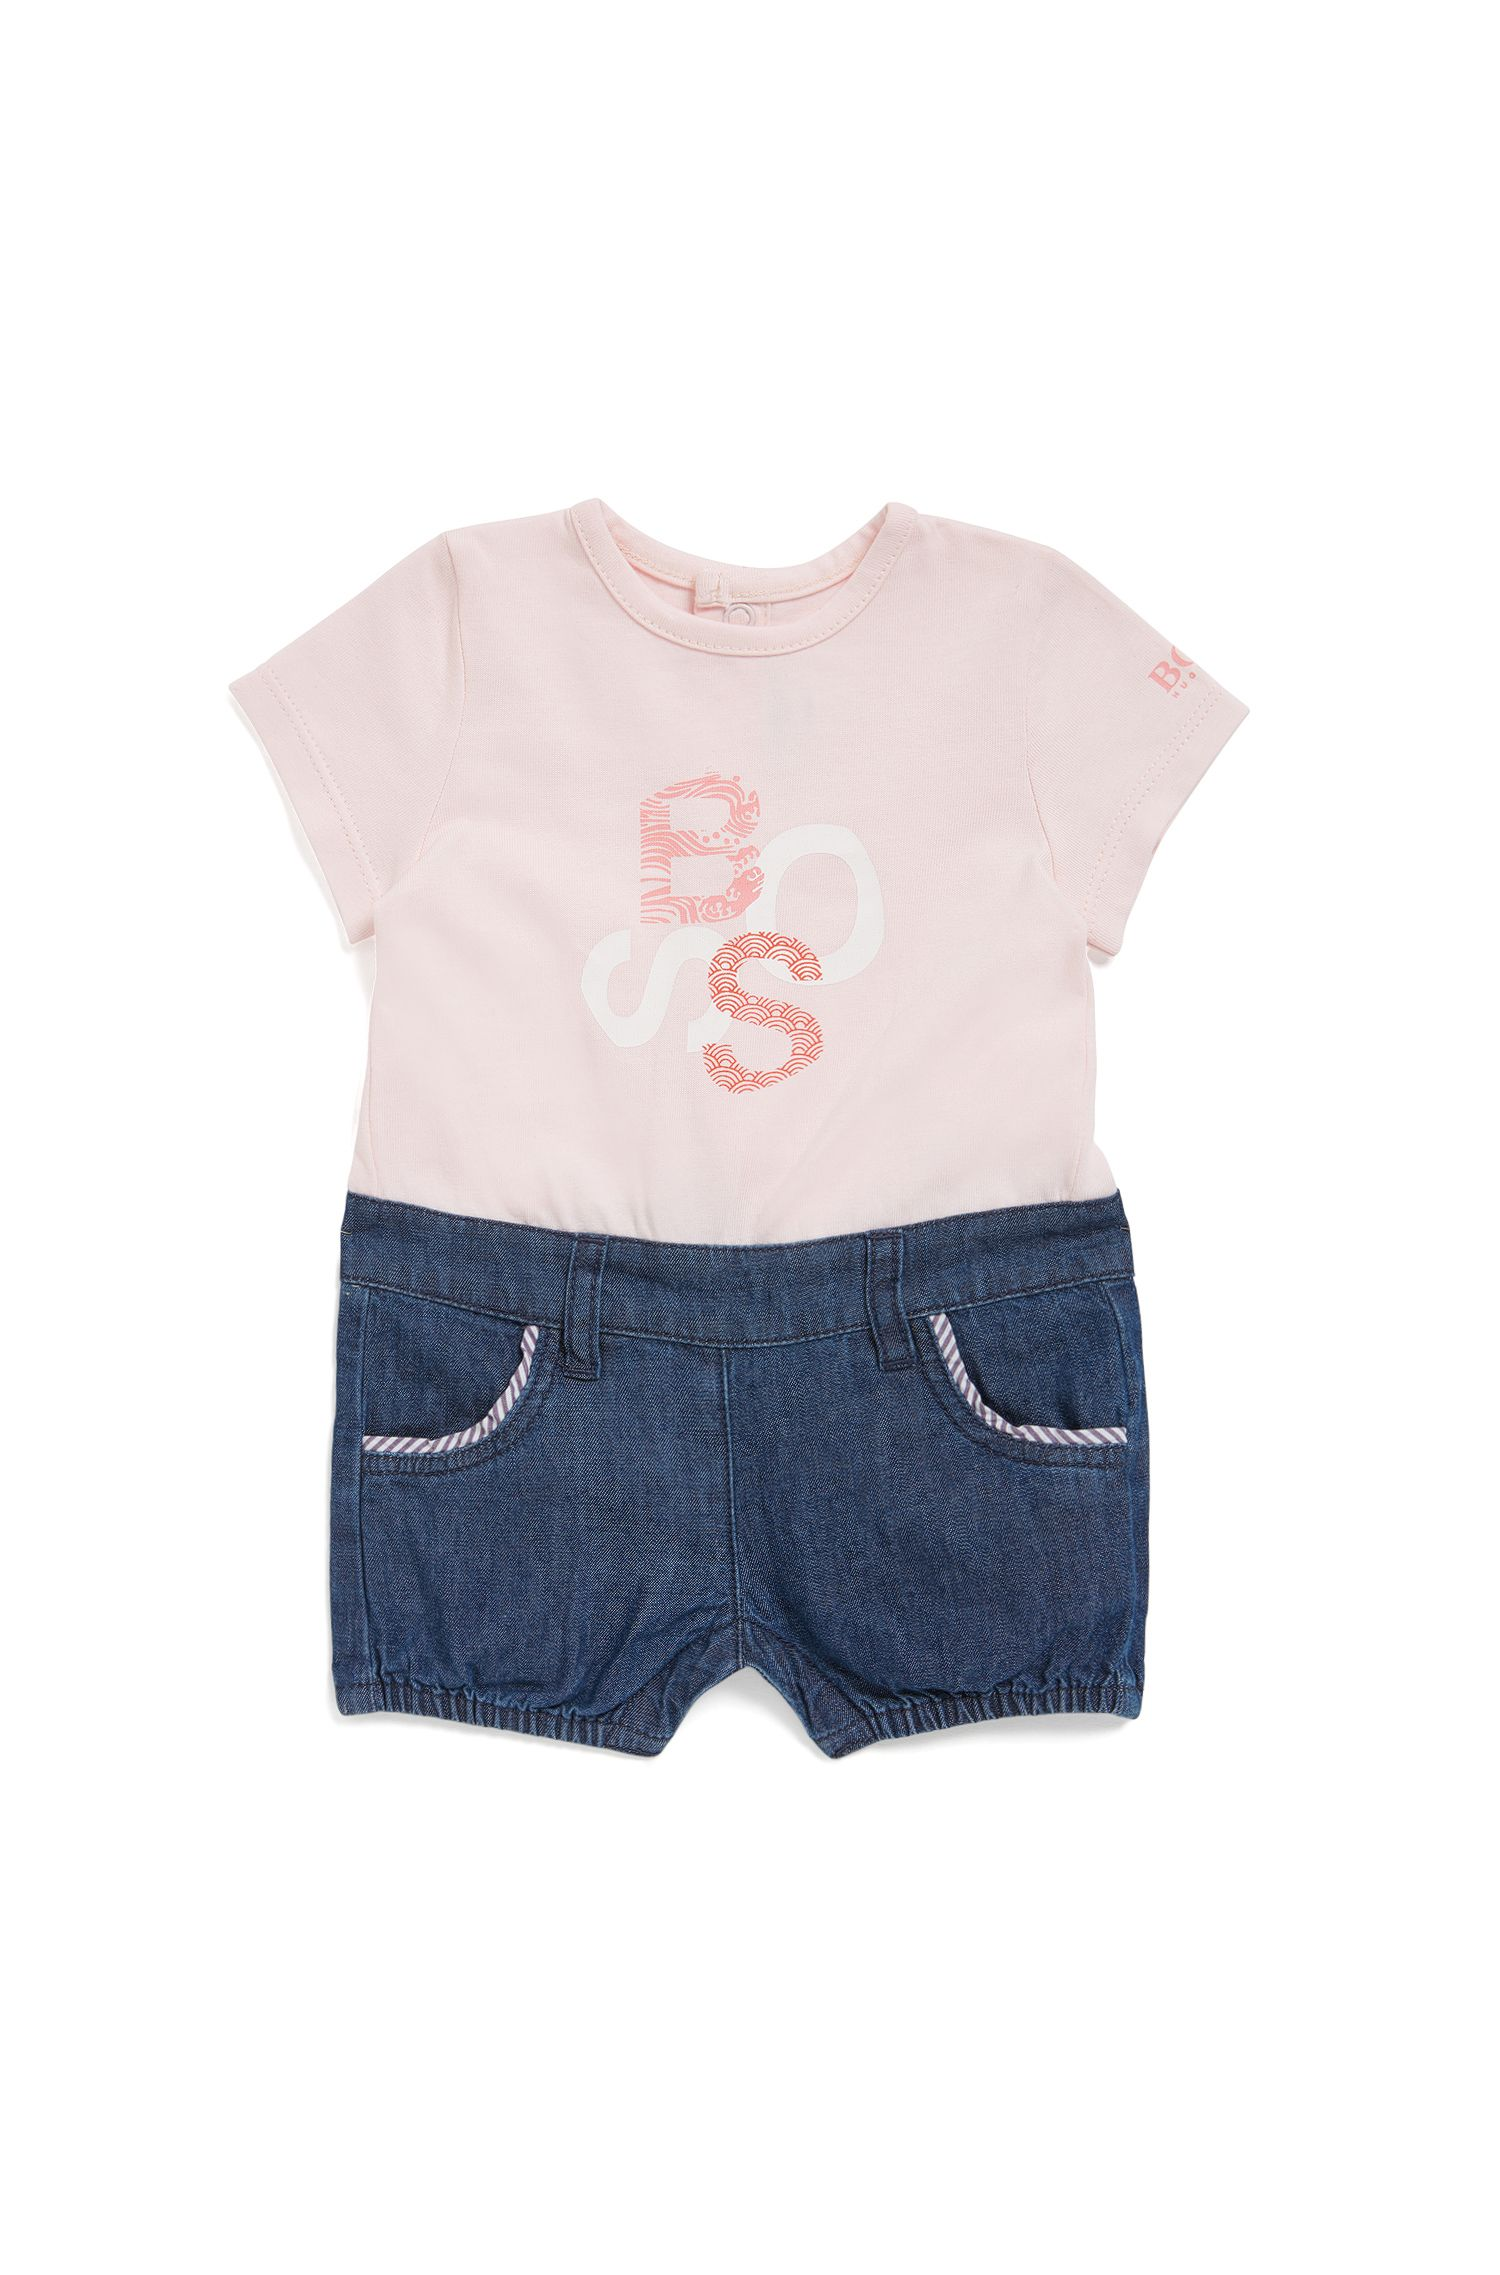 Baby overalls in a 2-piece look: 'J94185'